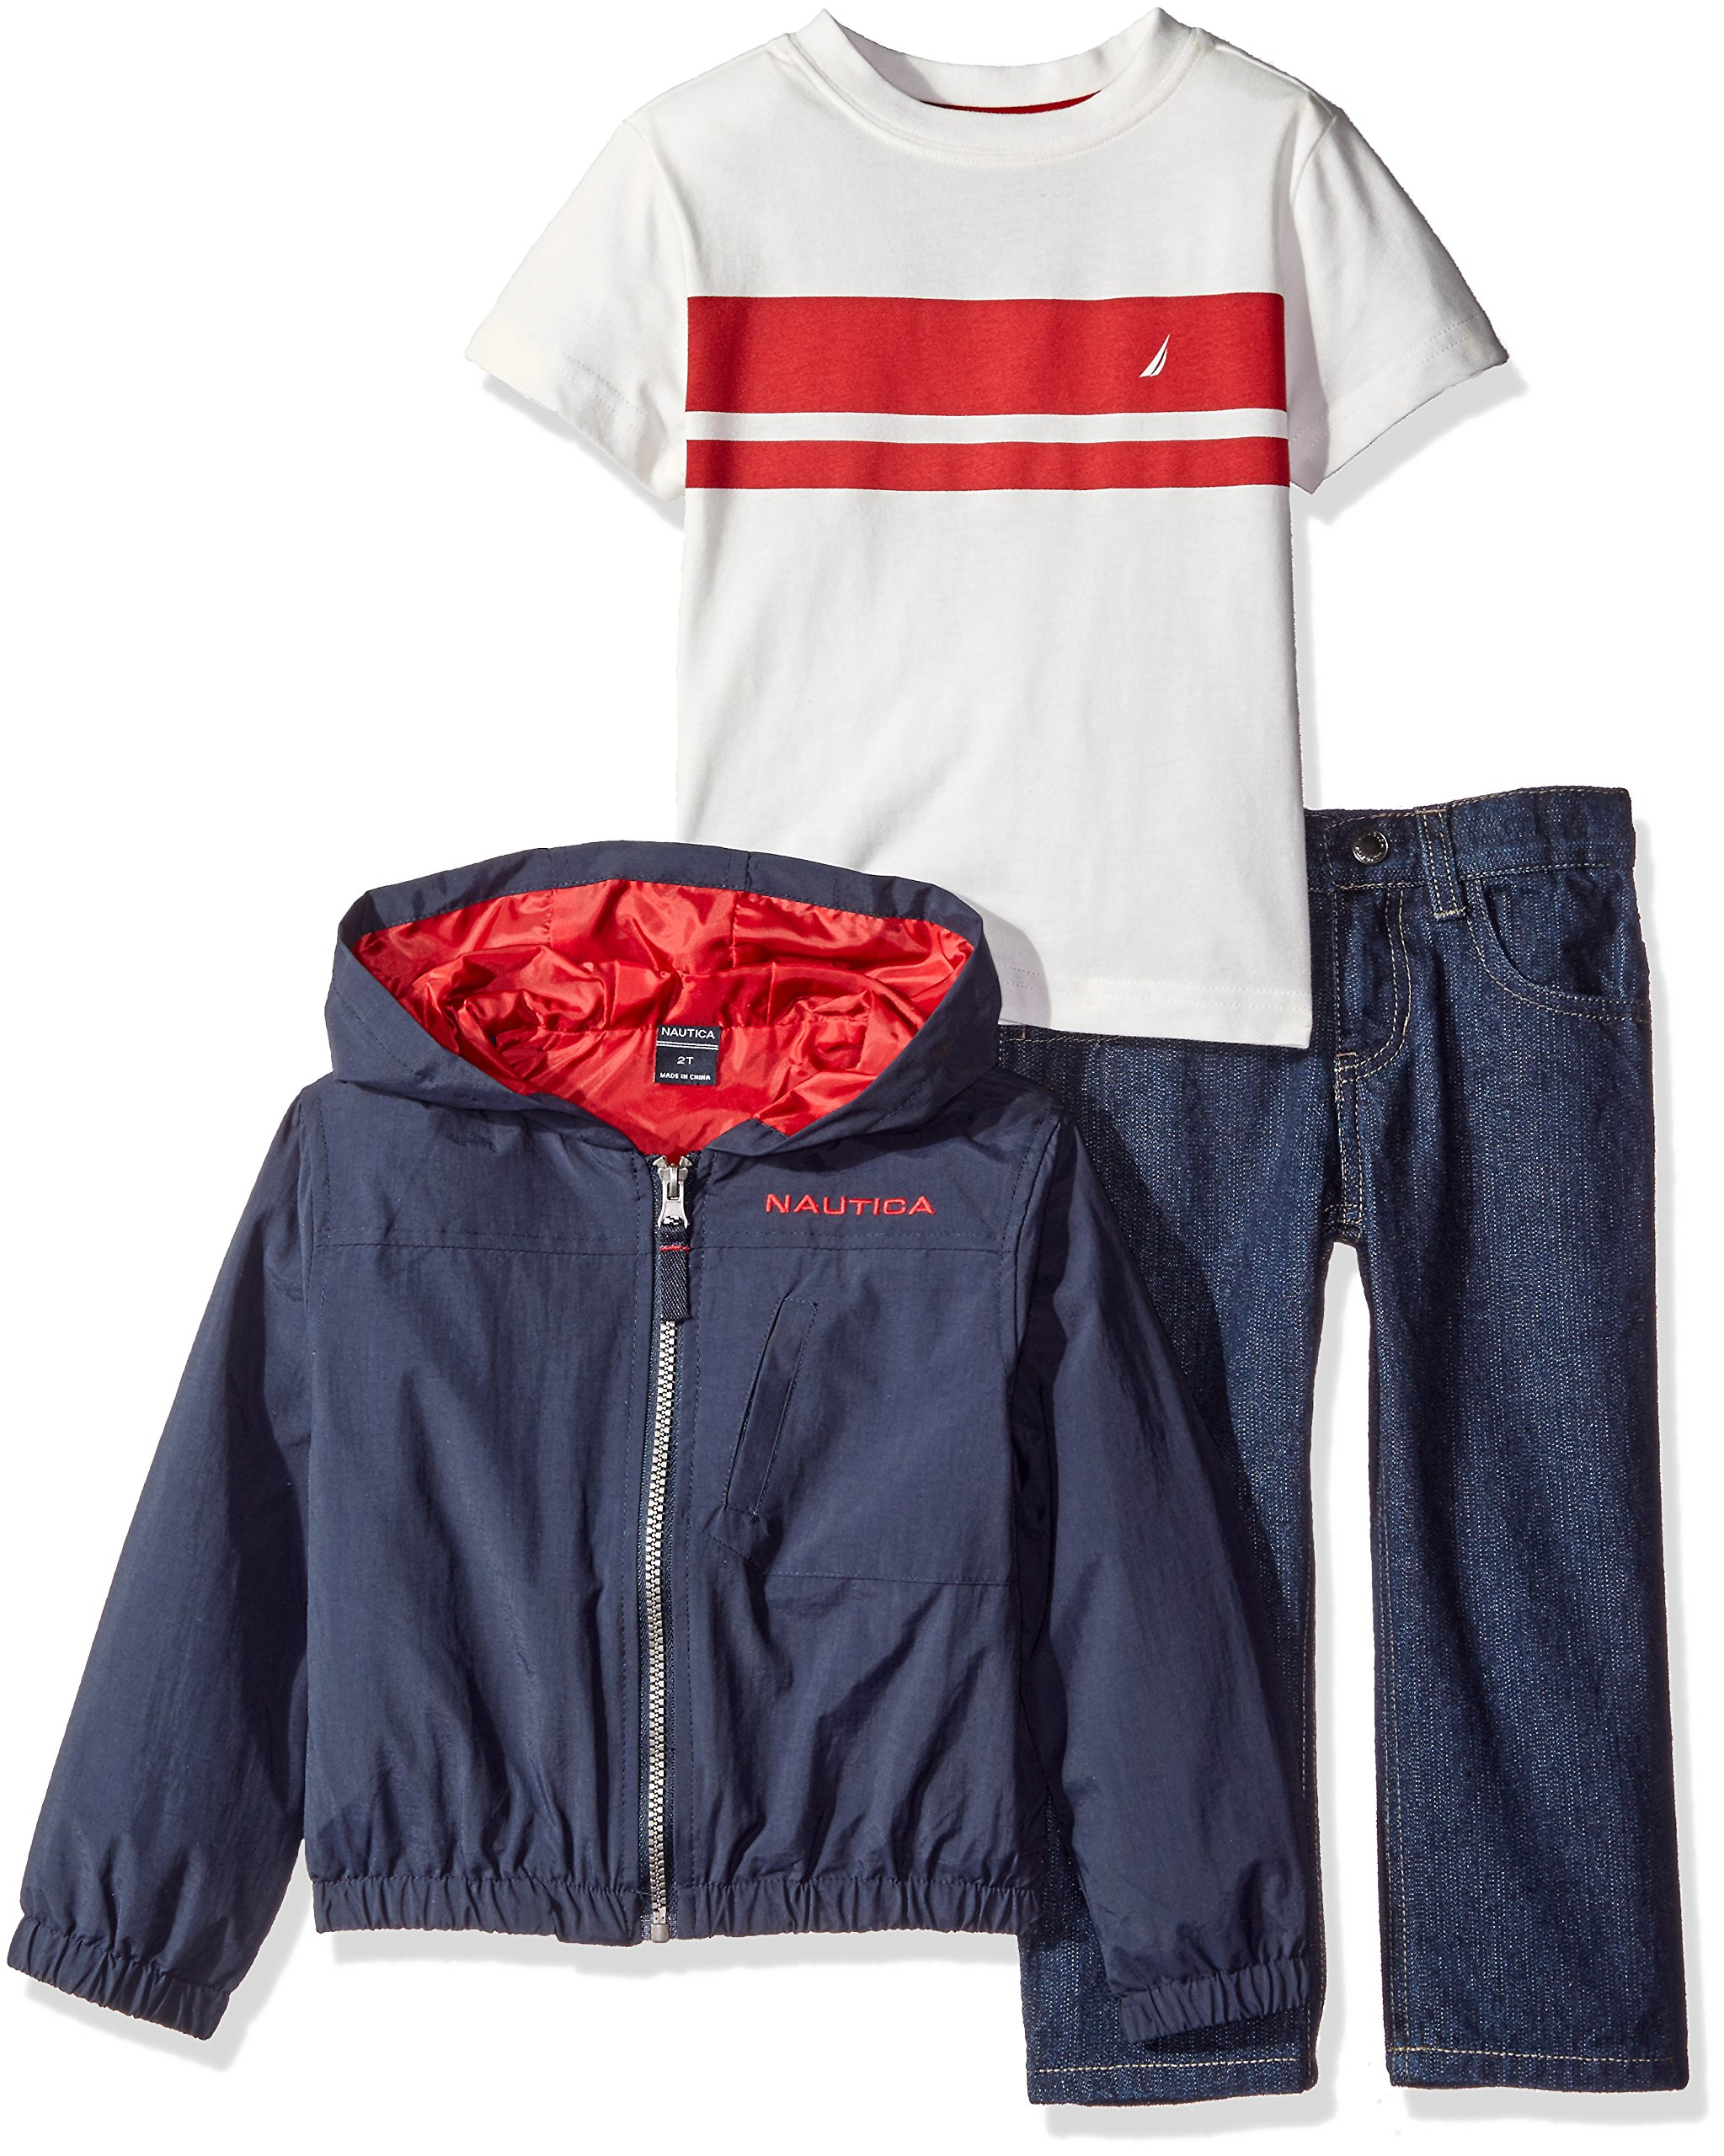 Nautica Little Boys' Toddler Three Piece Outerwear Set with Hooded Shell Jacket Tee and Pant, Sport Navy, 2T